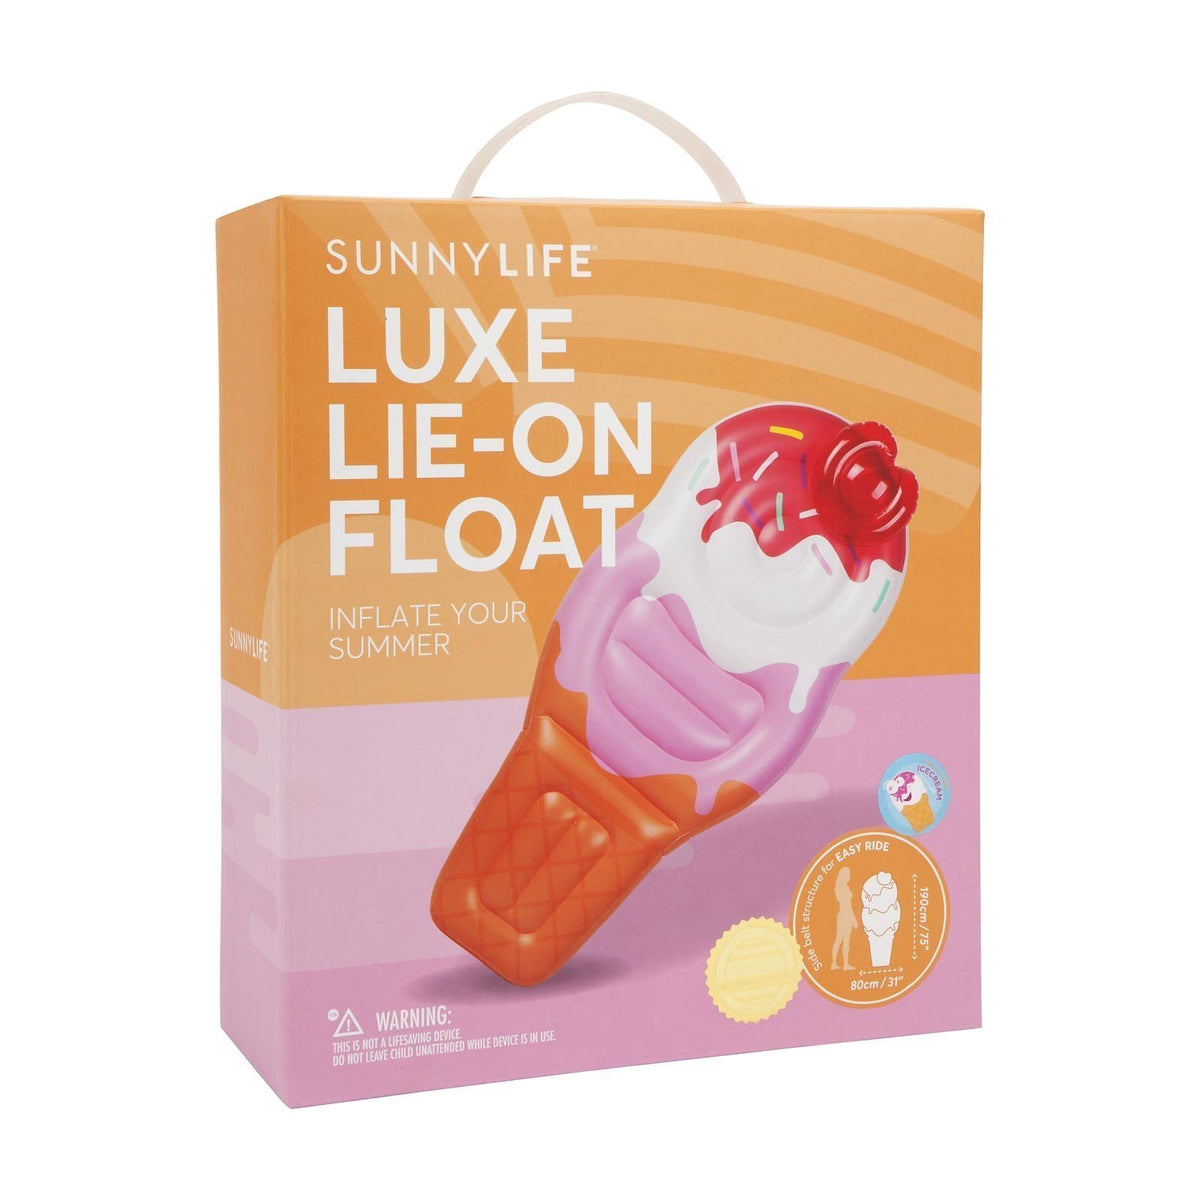 Sunnylife | Luxe Lie-On Float | Ice Cream